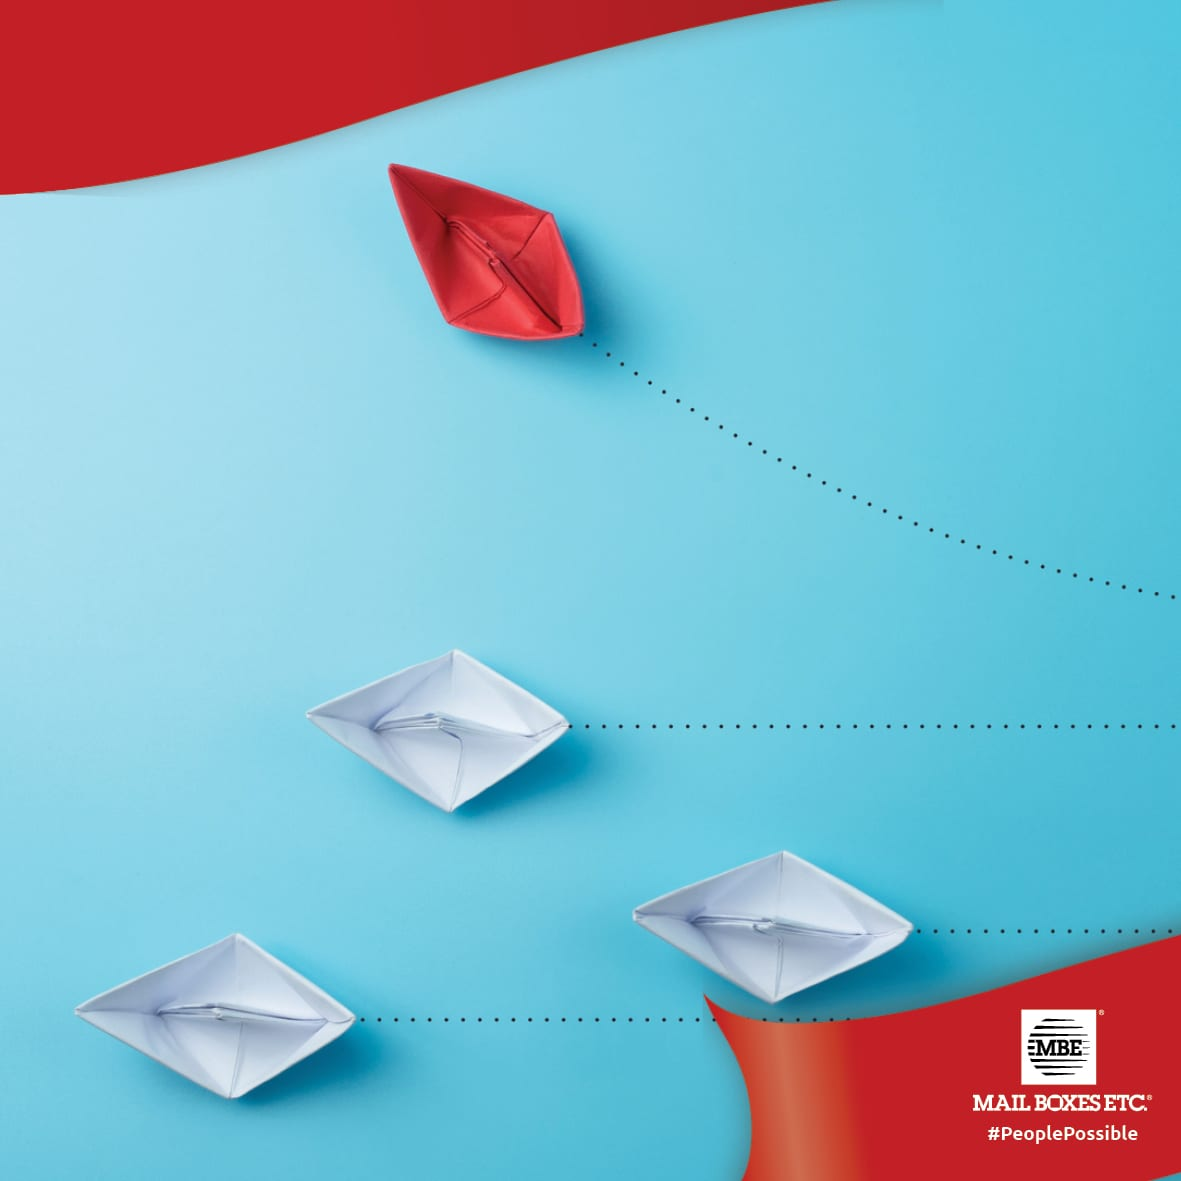 Red & Colour paper boats on blue background